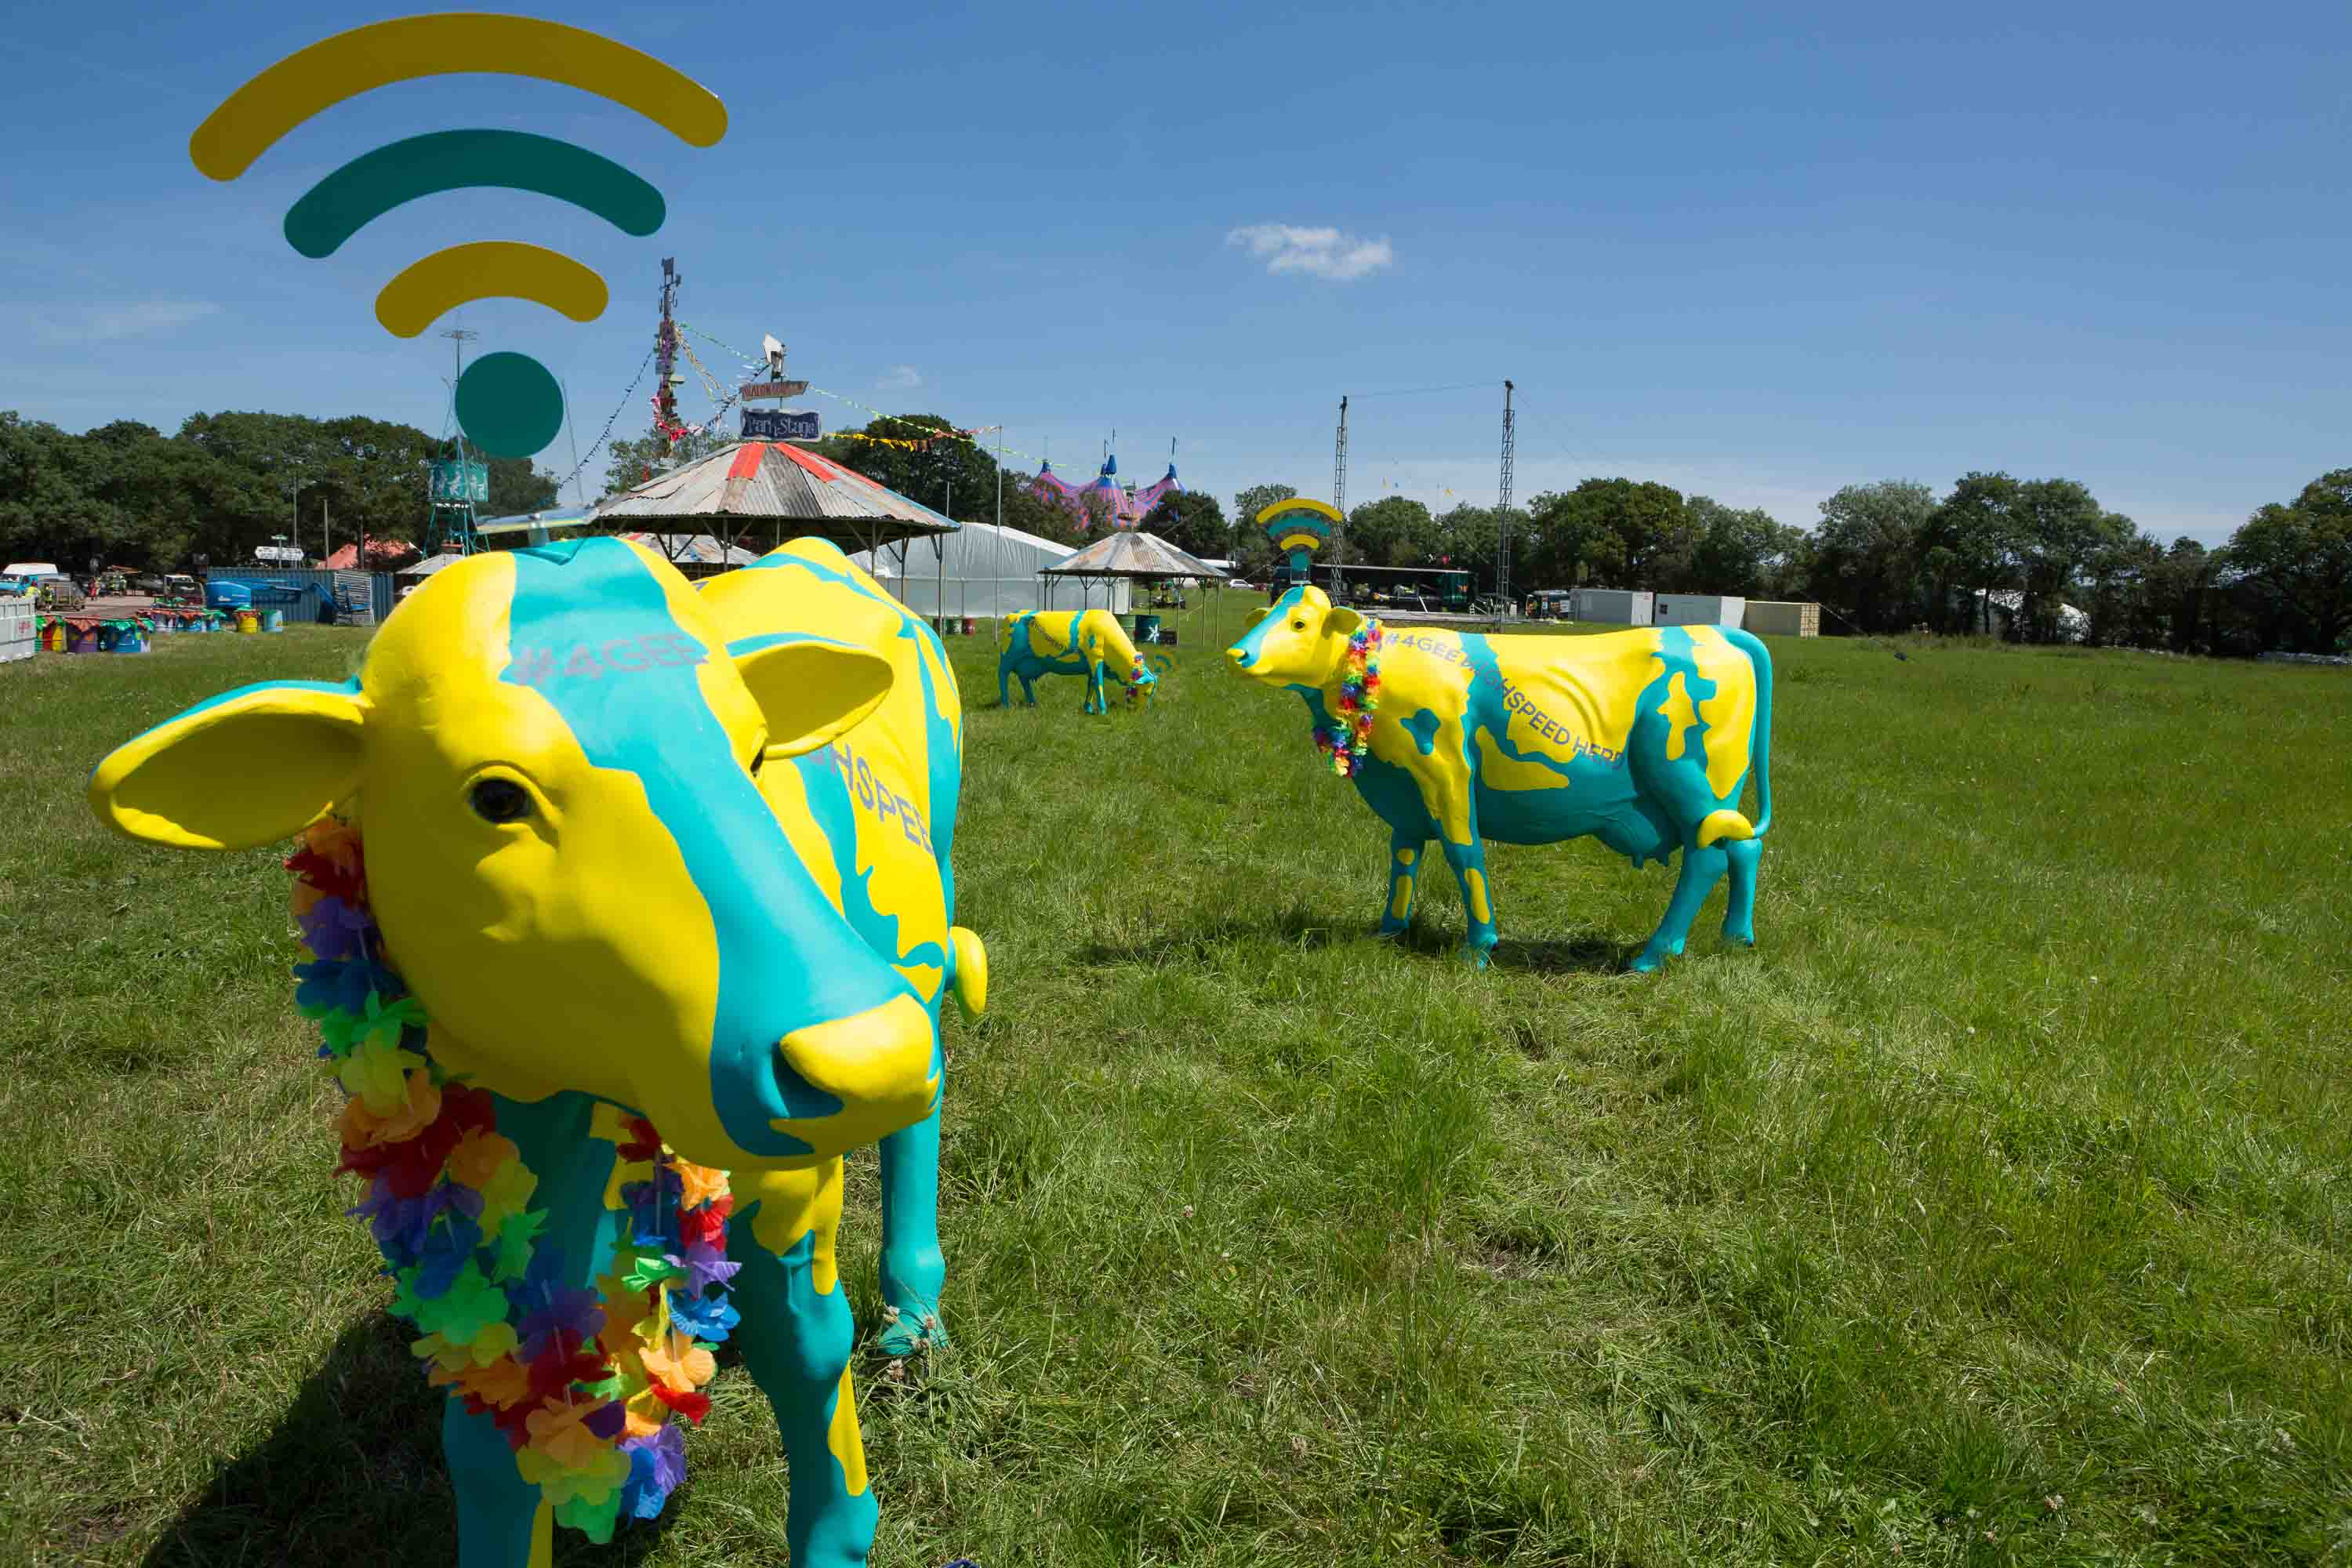 EE 4G-Enabled Fibreglass Cows To Power Glastonbury Wi-Fi